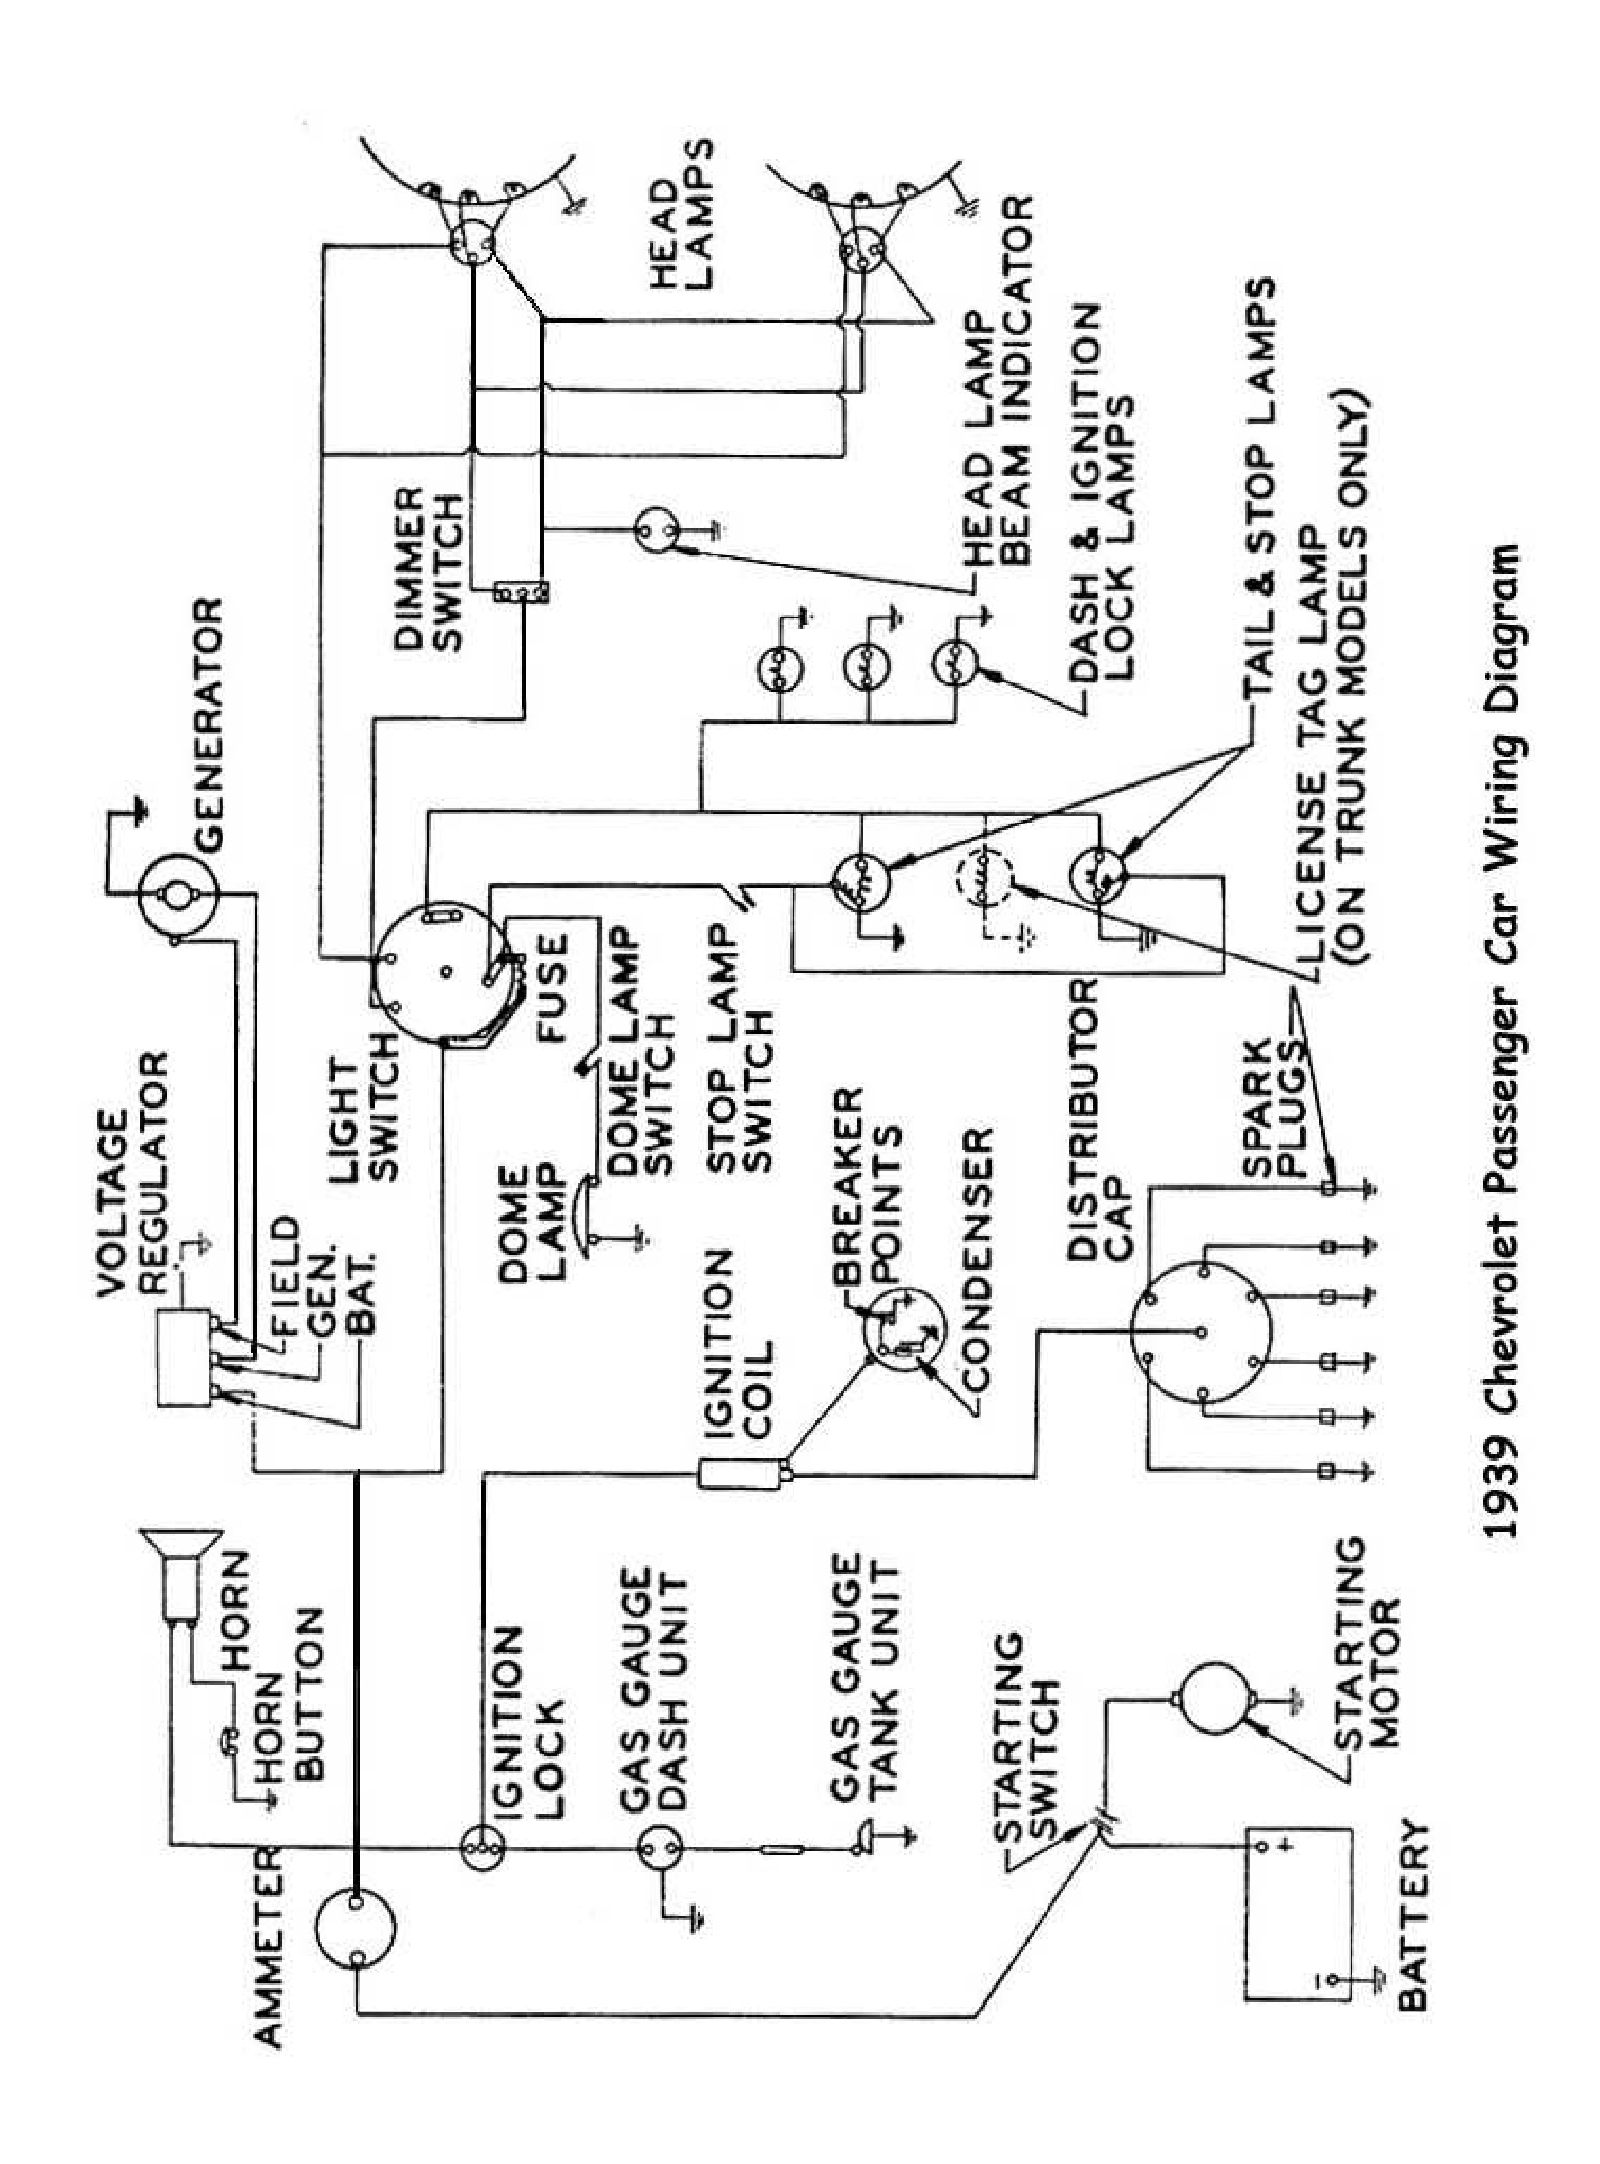 39car chevy wiring diagrams,Chevy Truck Wiring